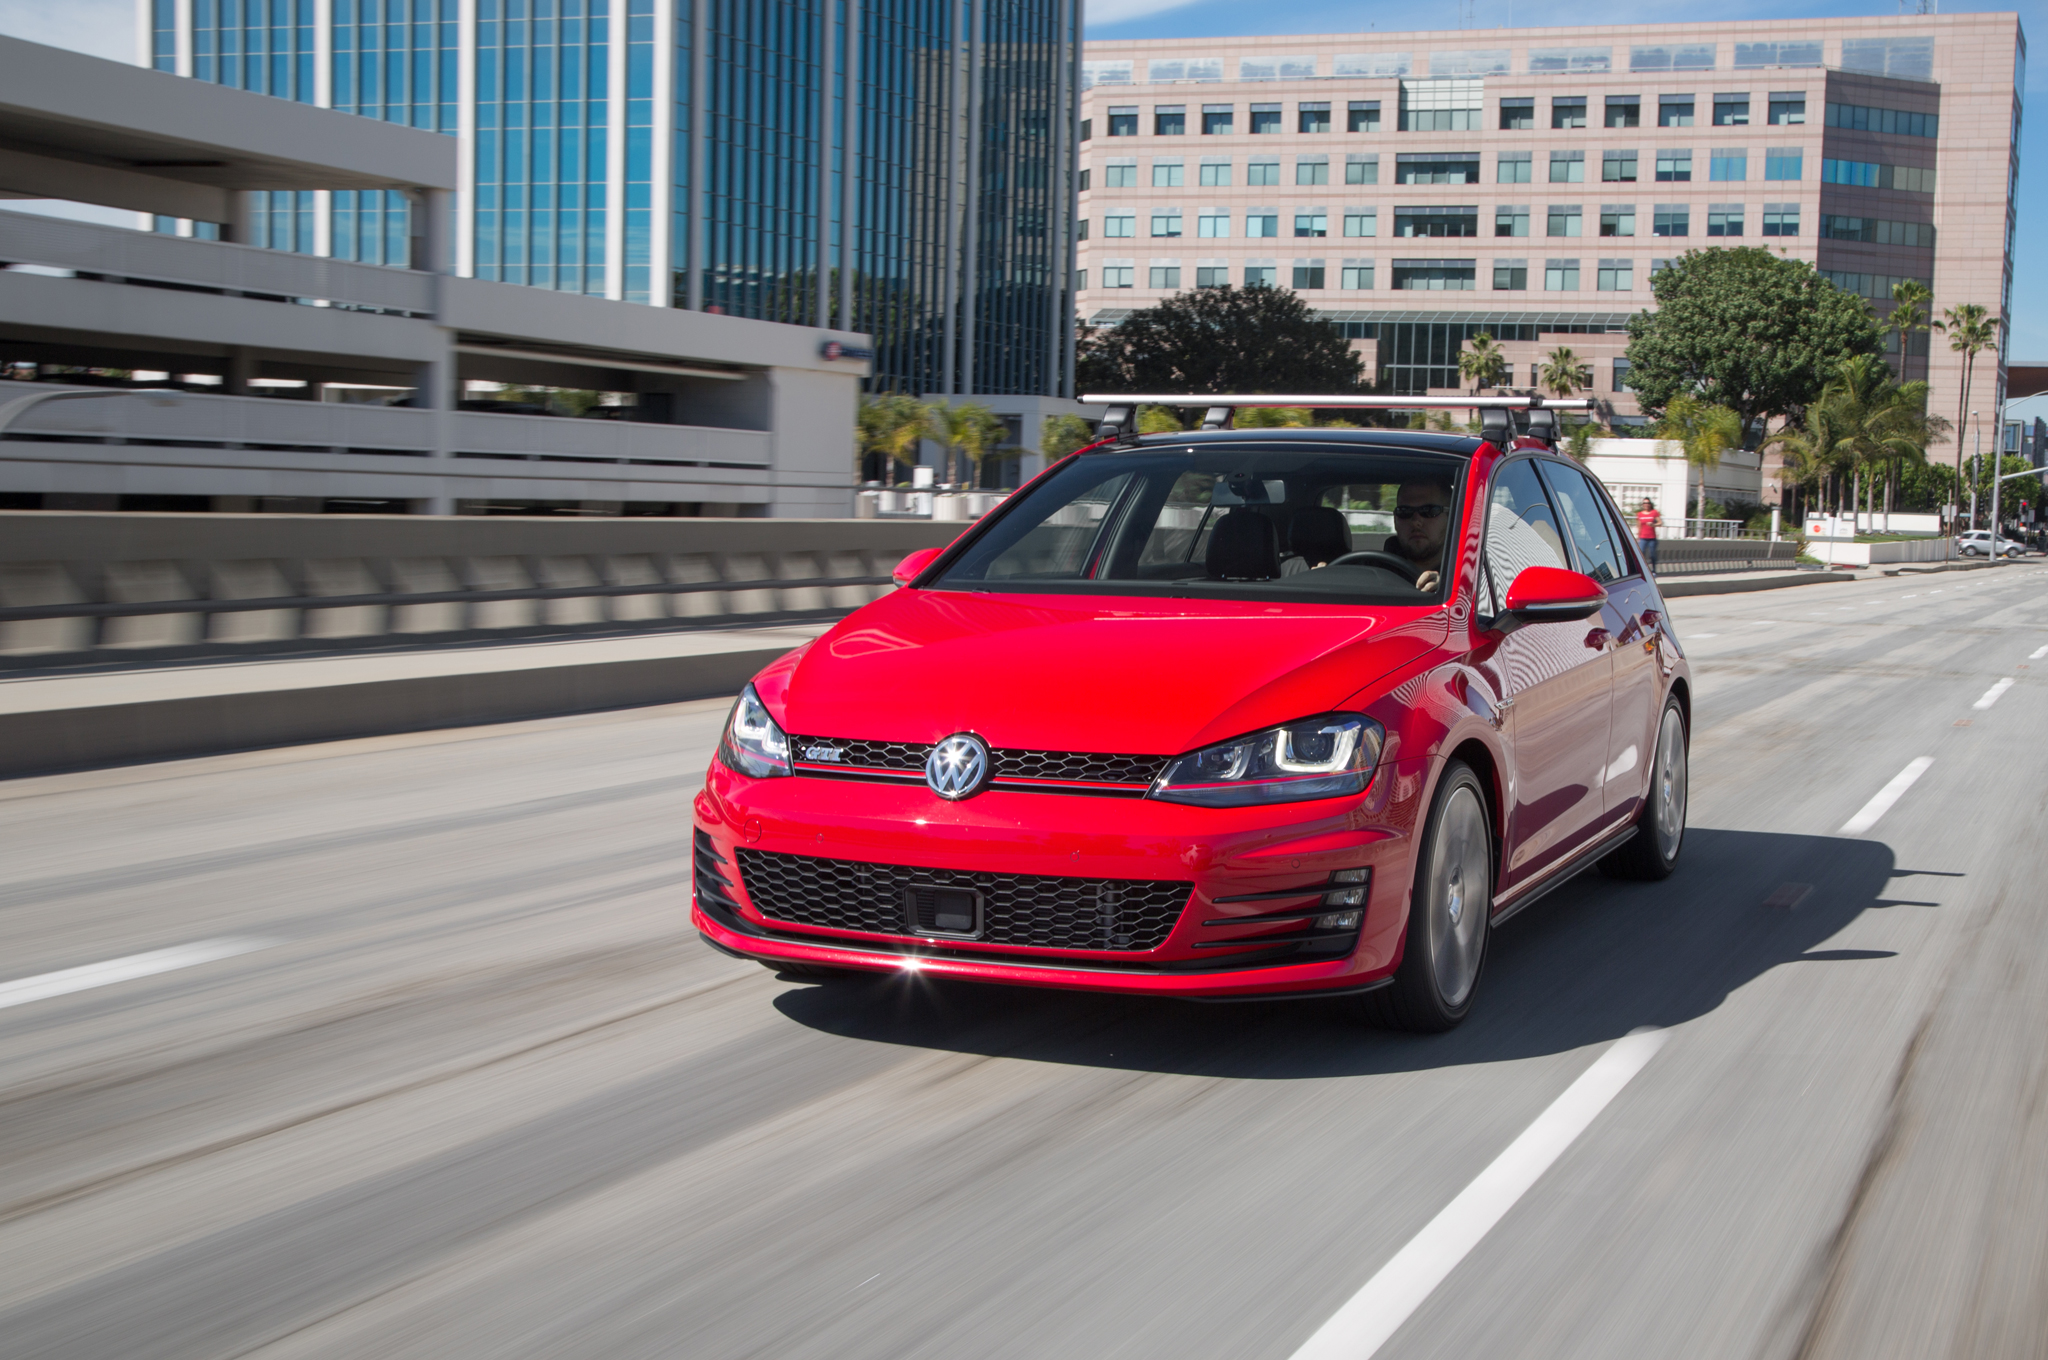 2015 Volkswagen Golf Gti Red With Roof Rack (Photo 55 of 55)